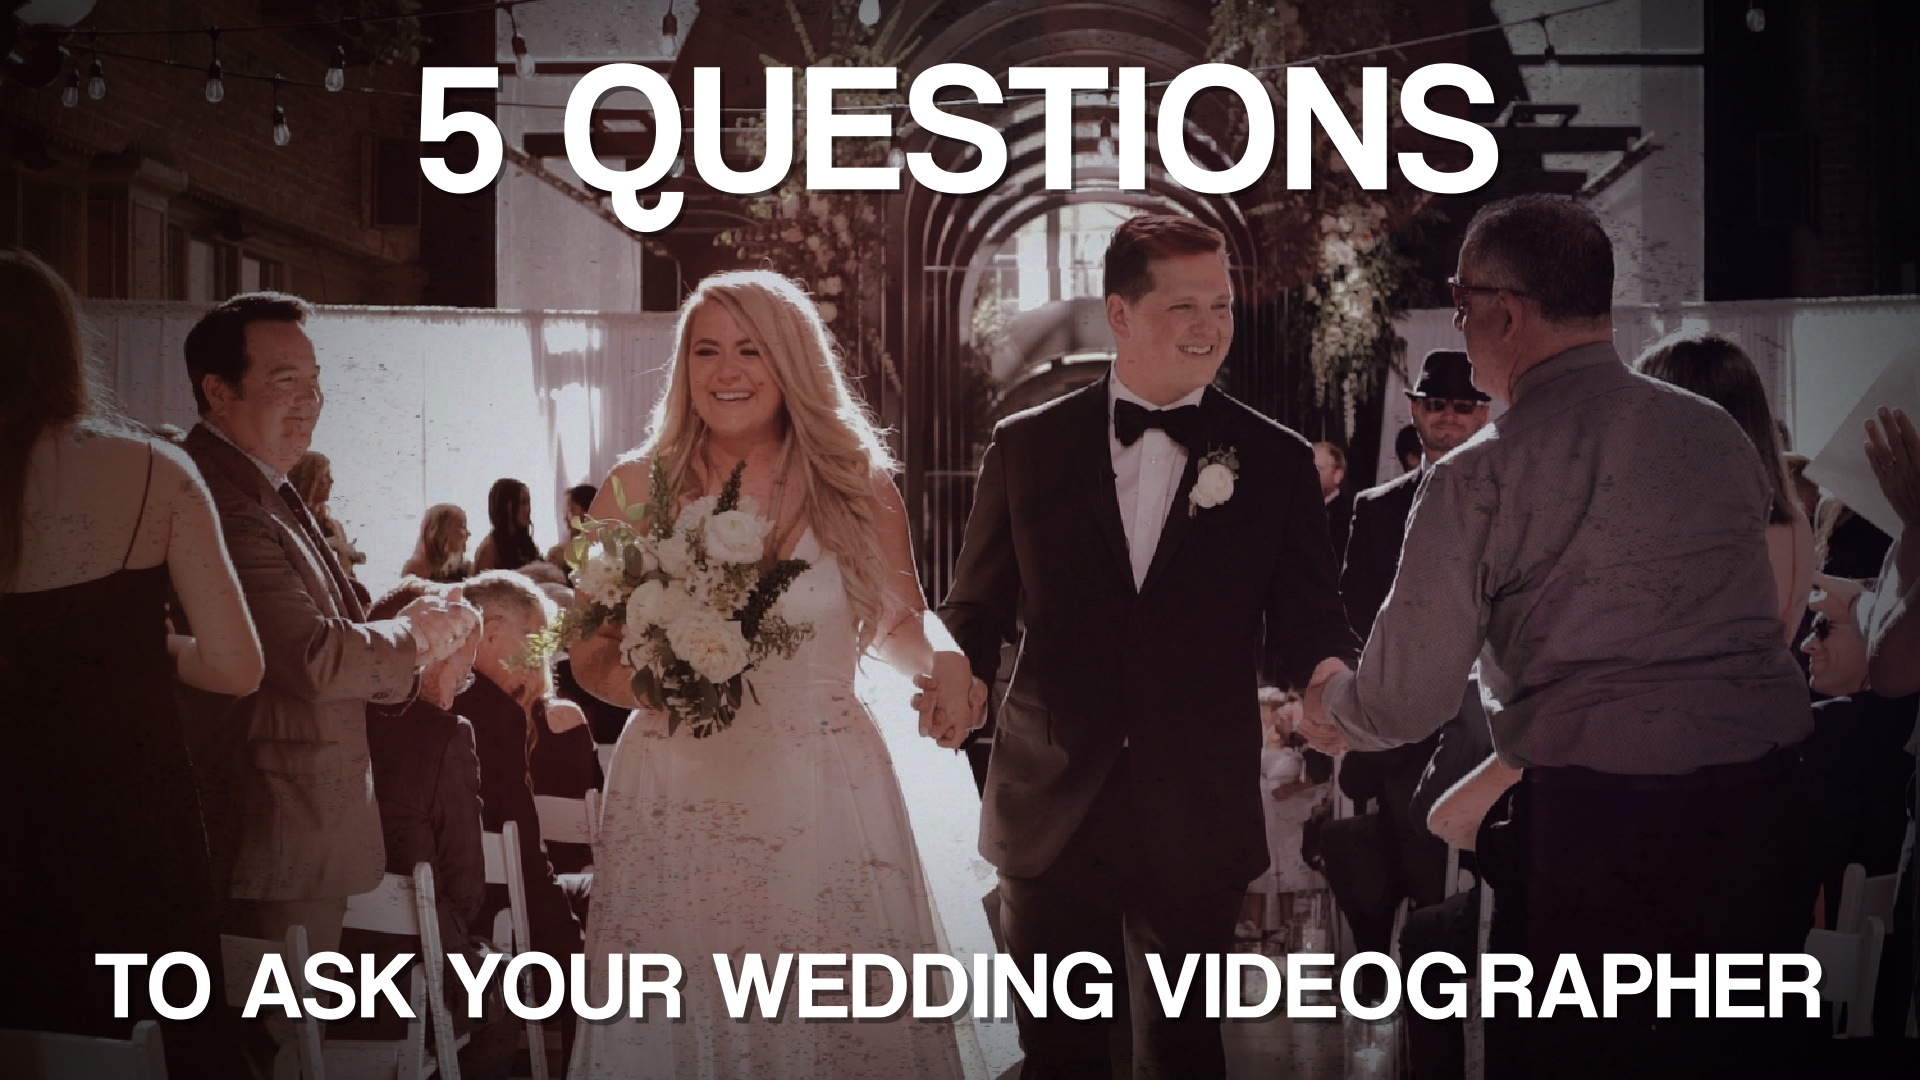 What to ask my wedding videographer